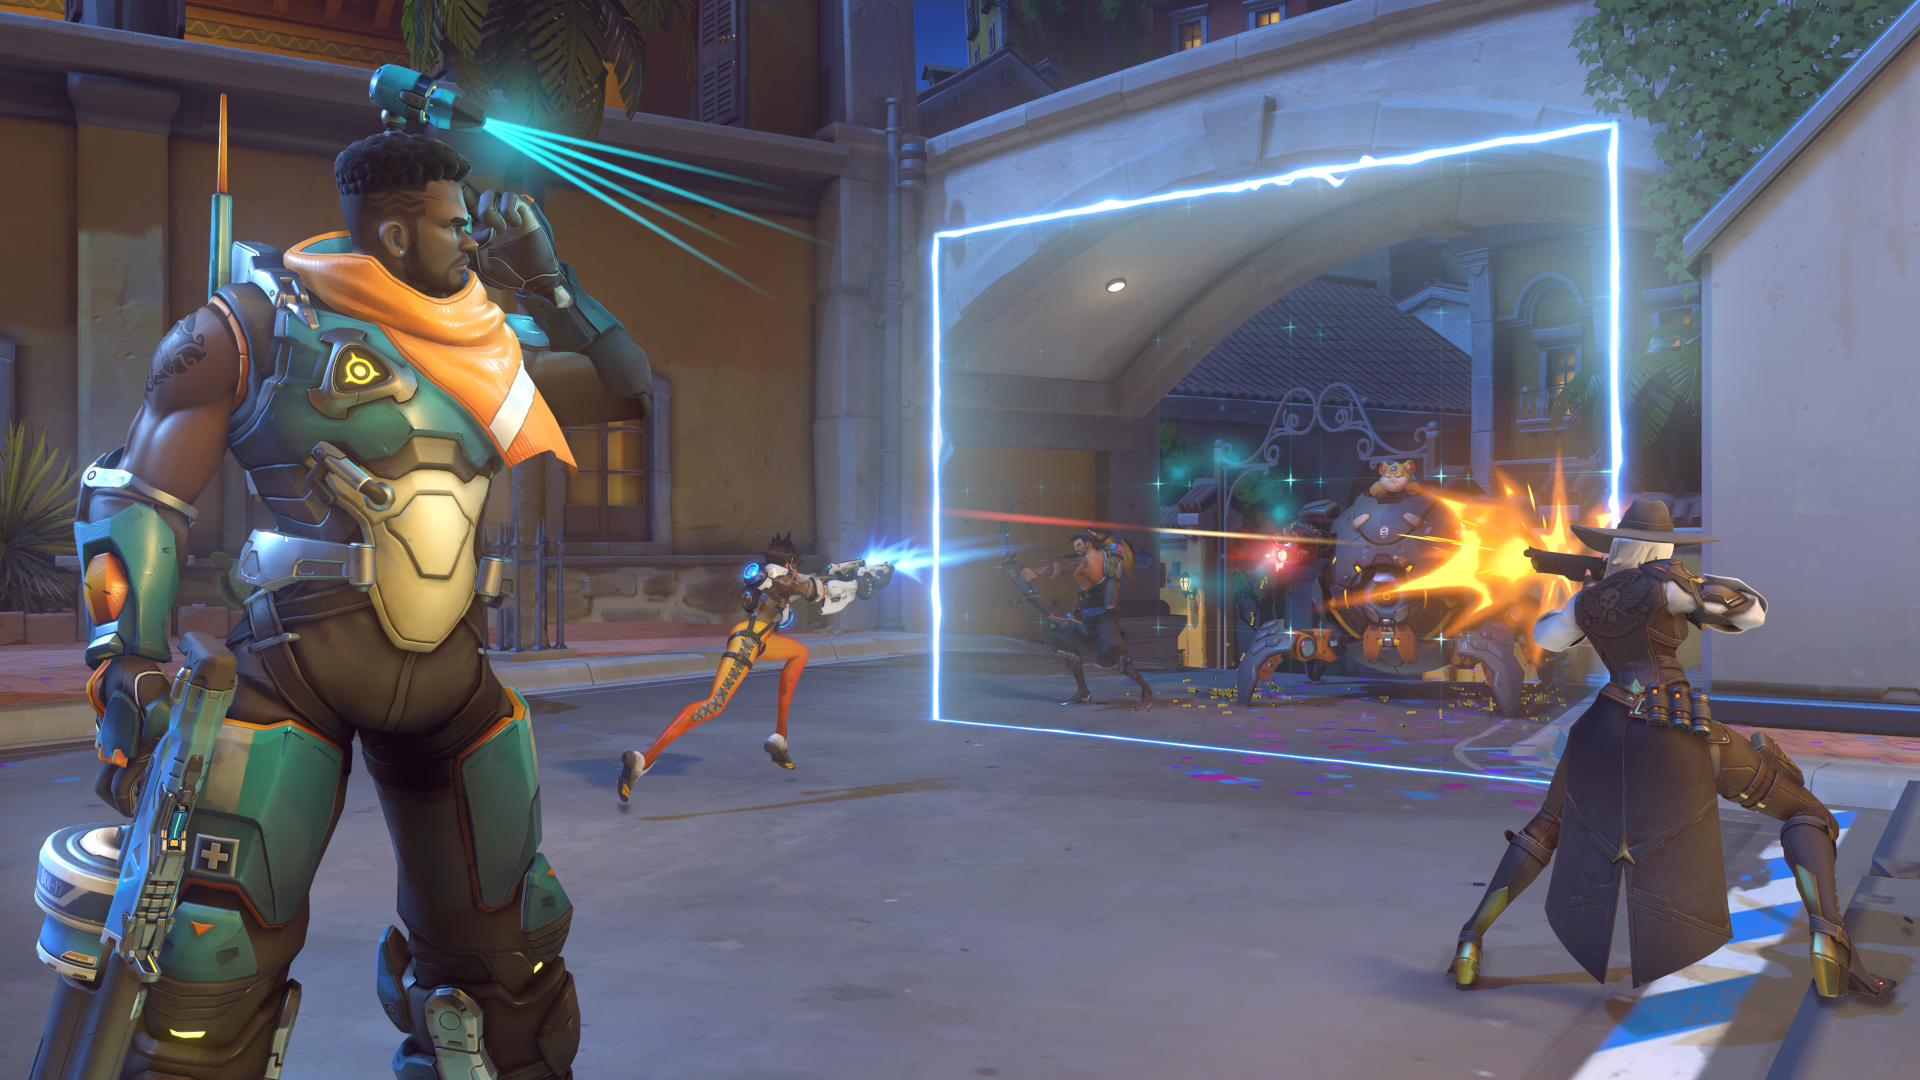 Baptiste Is Fun To Play, But He Probably Won't Shake Up Overwatch Just Yet